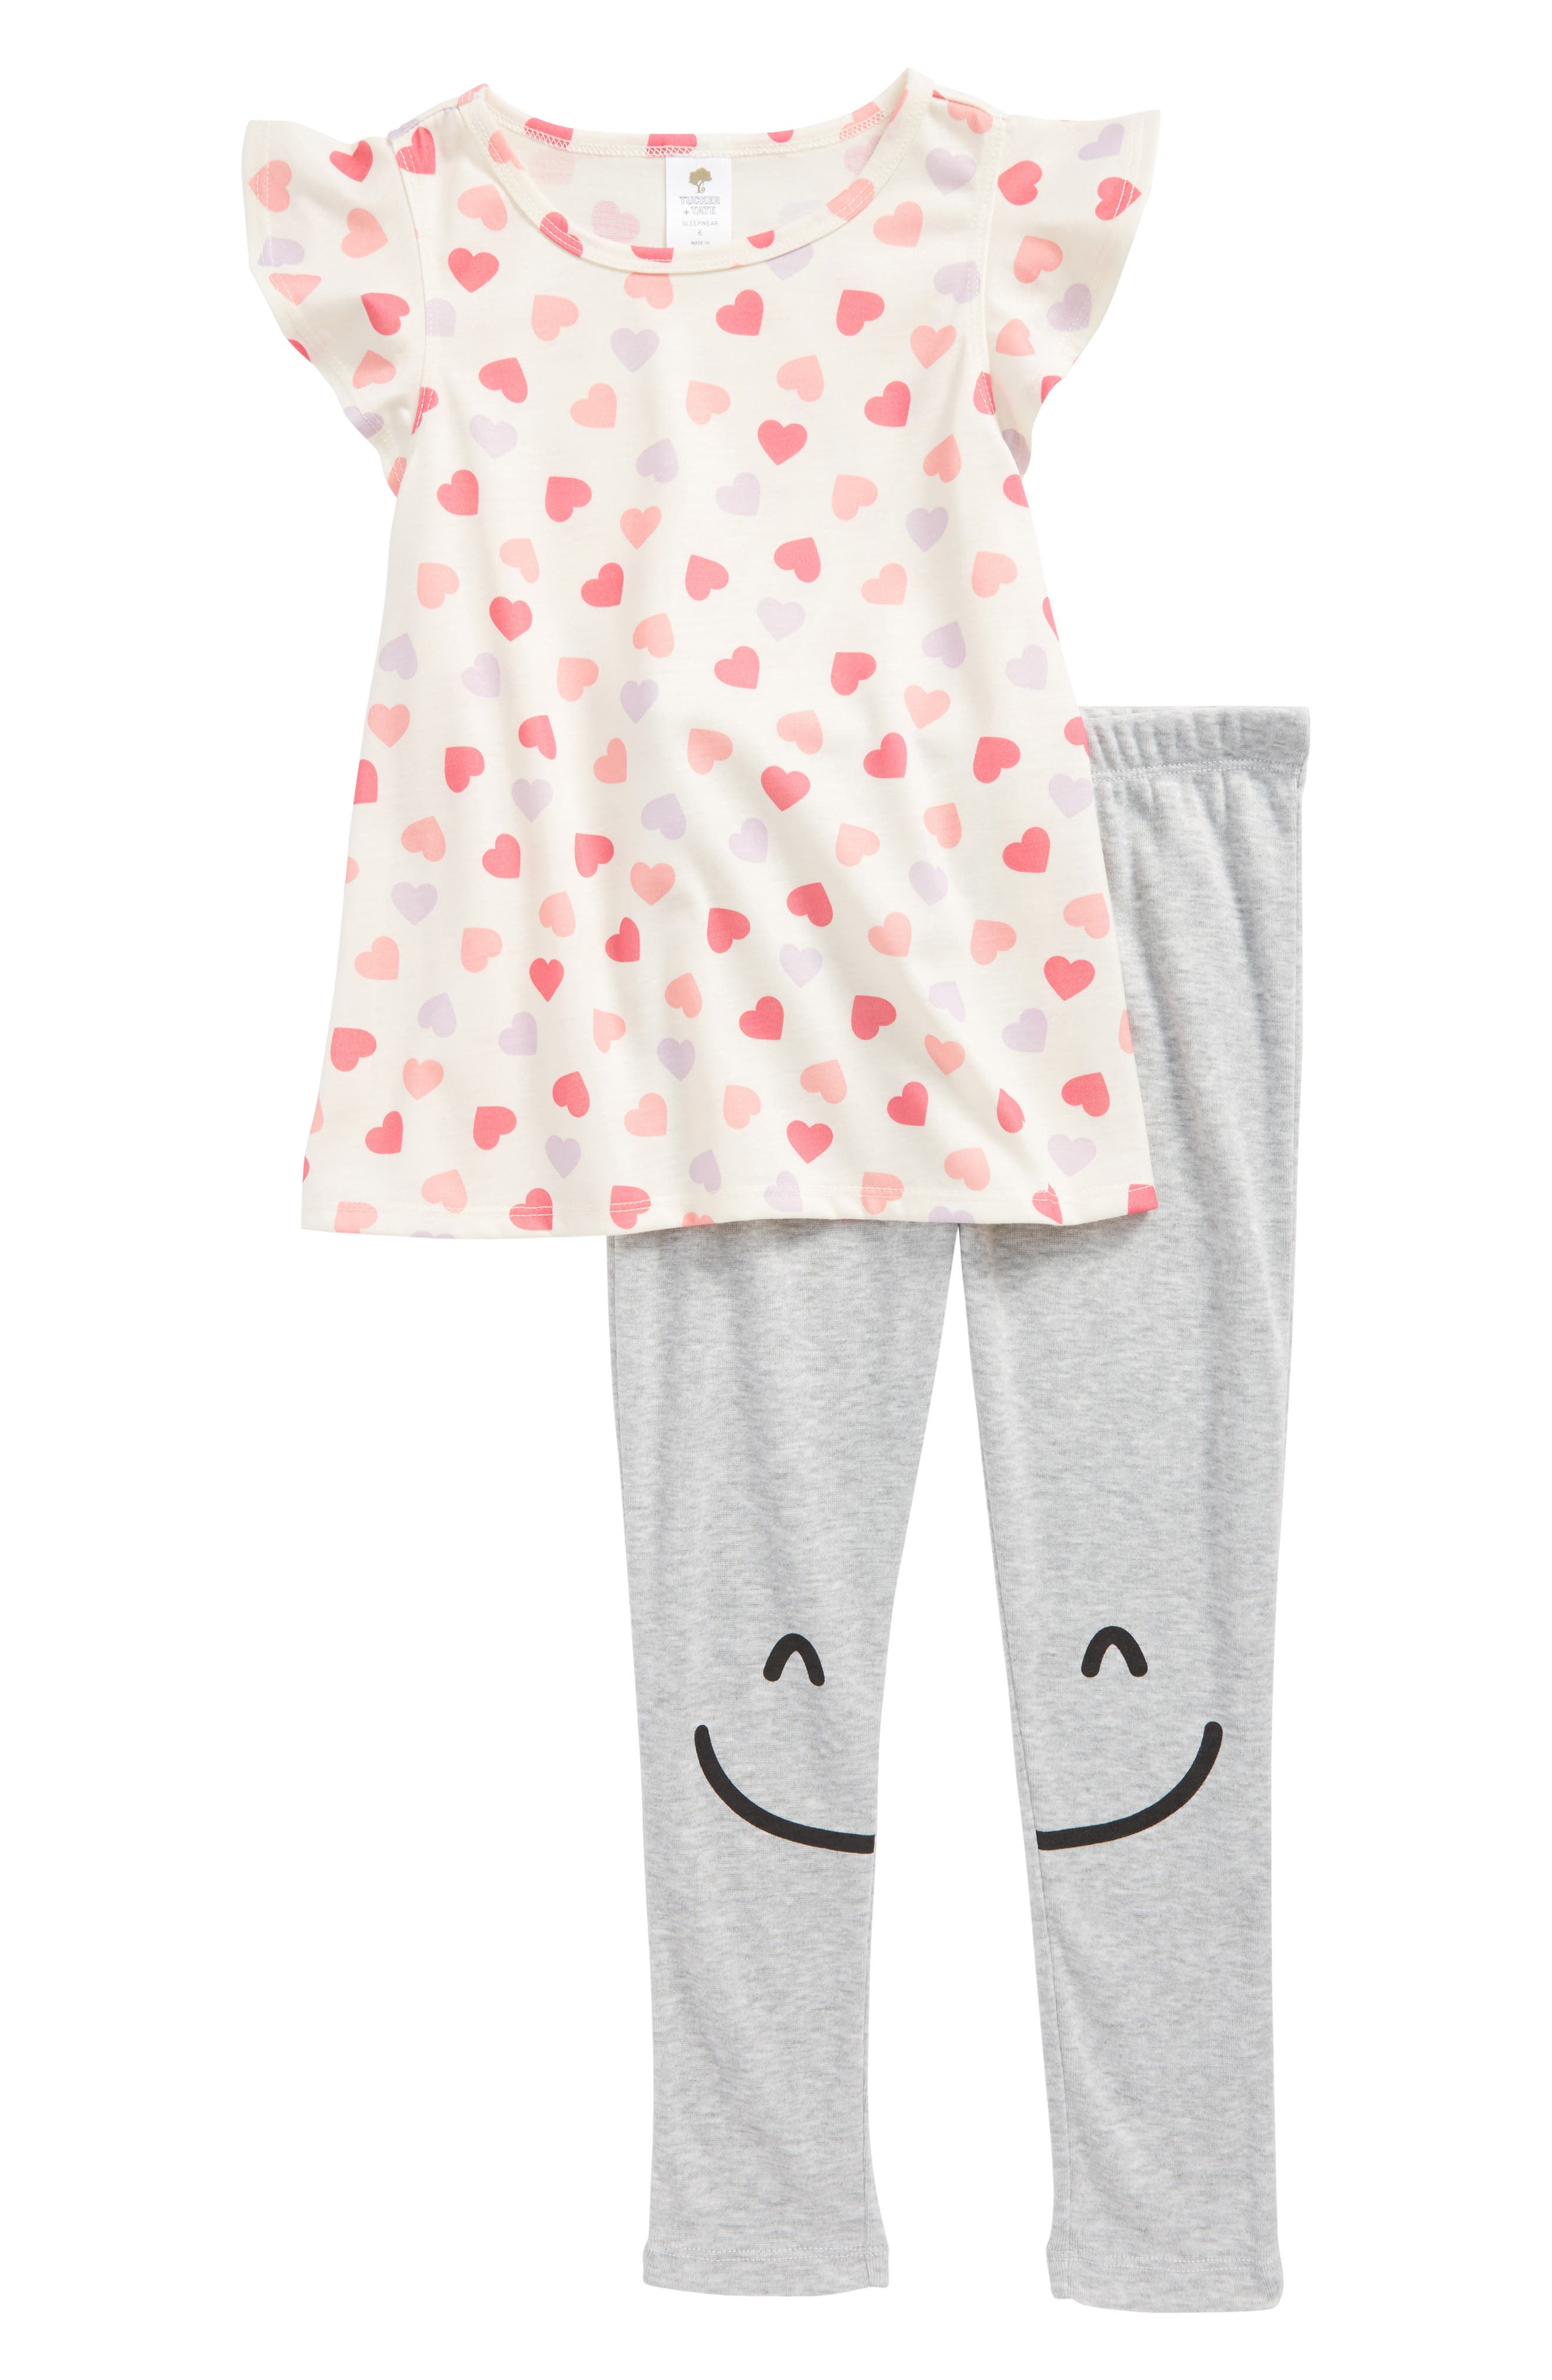 Graphic Print Two-Piece Pajamas,                         Main,                         color, Ivory Egret Multi Hearts